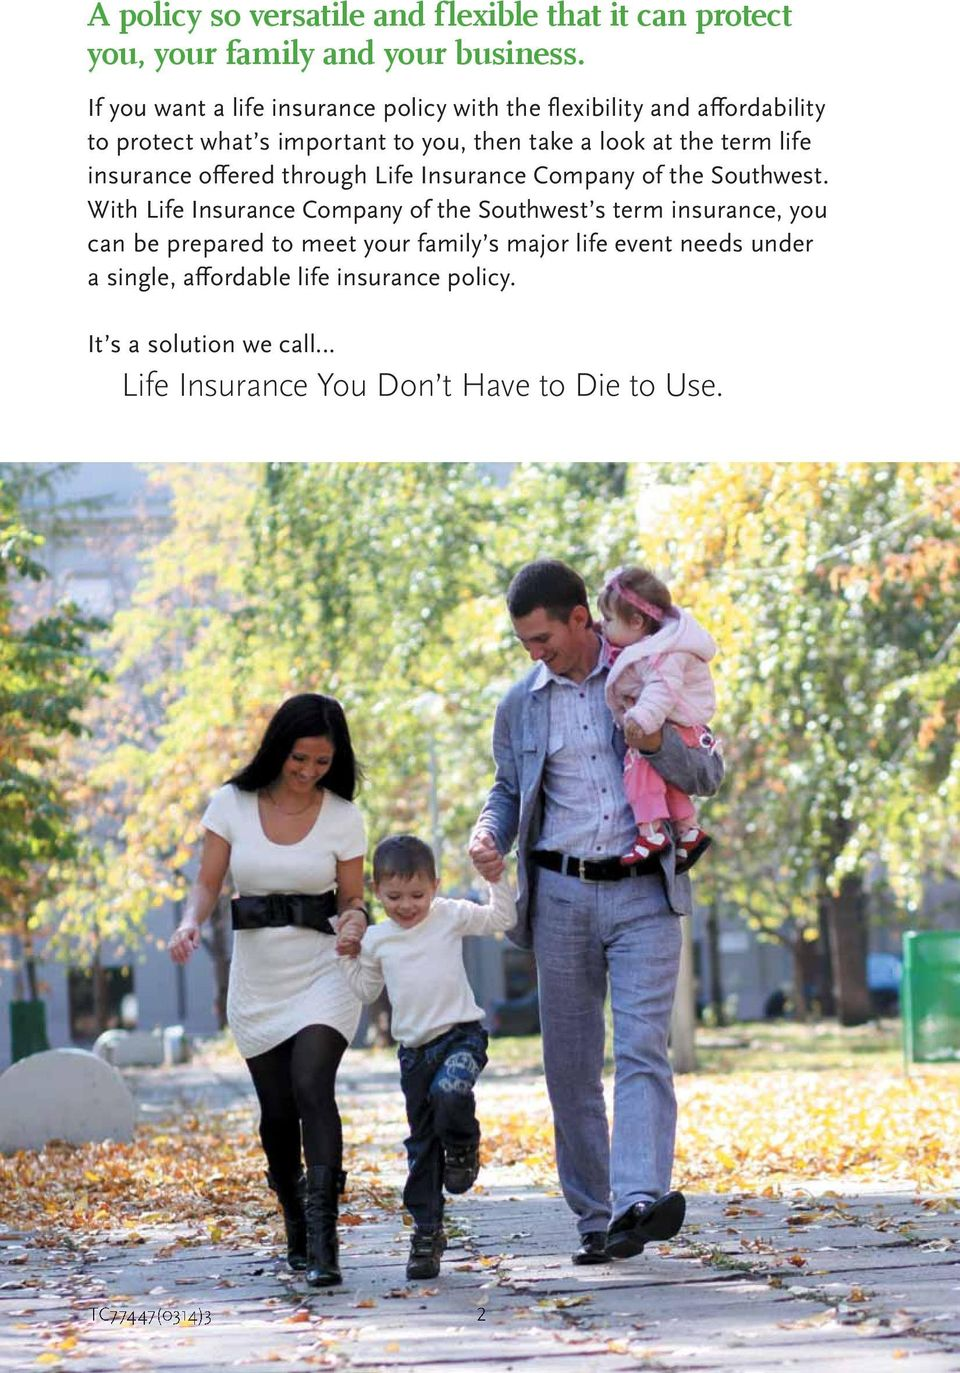 life insurance offered through Life Insurance Company of the Southwest.